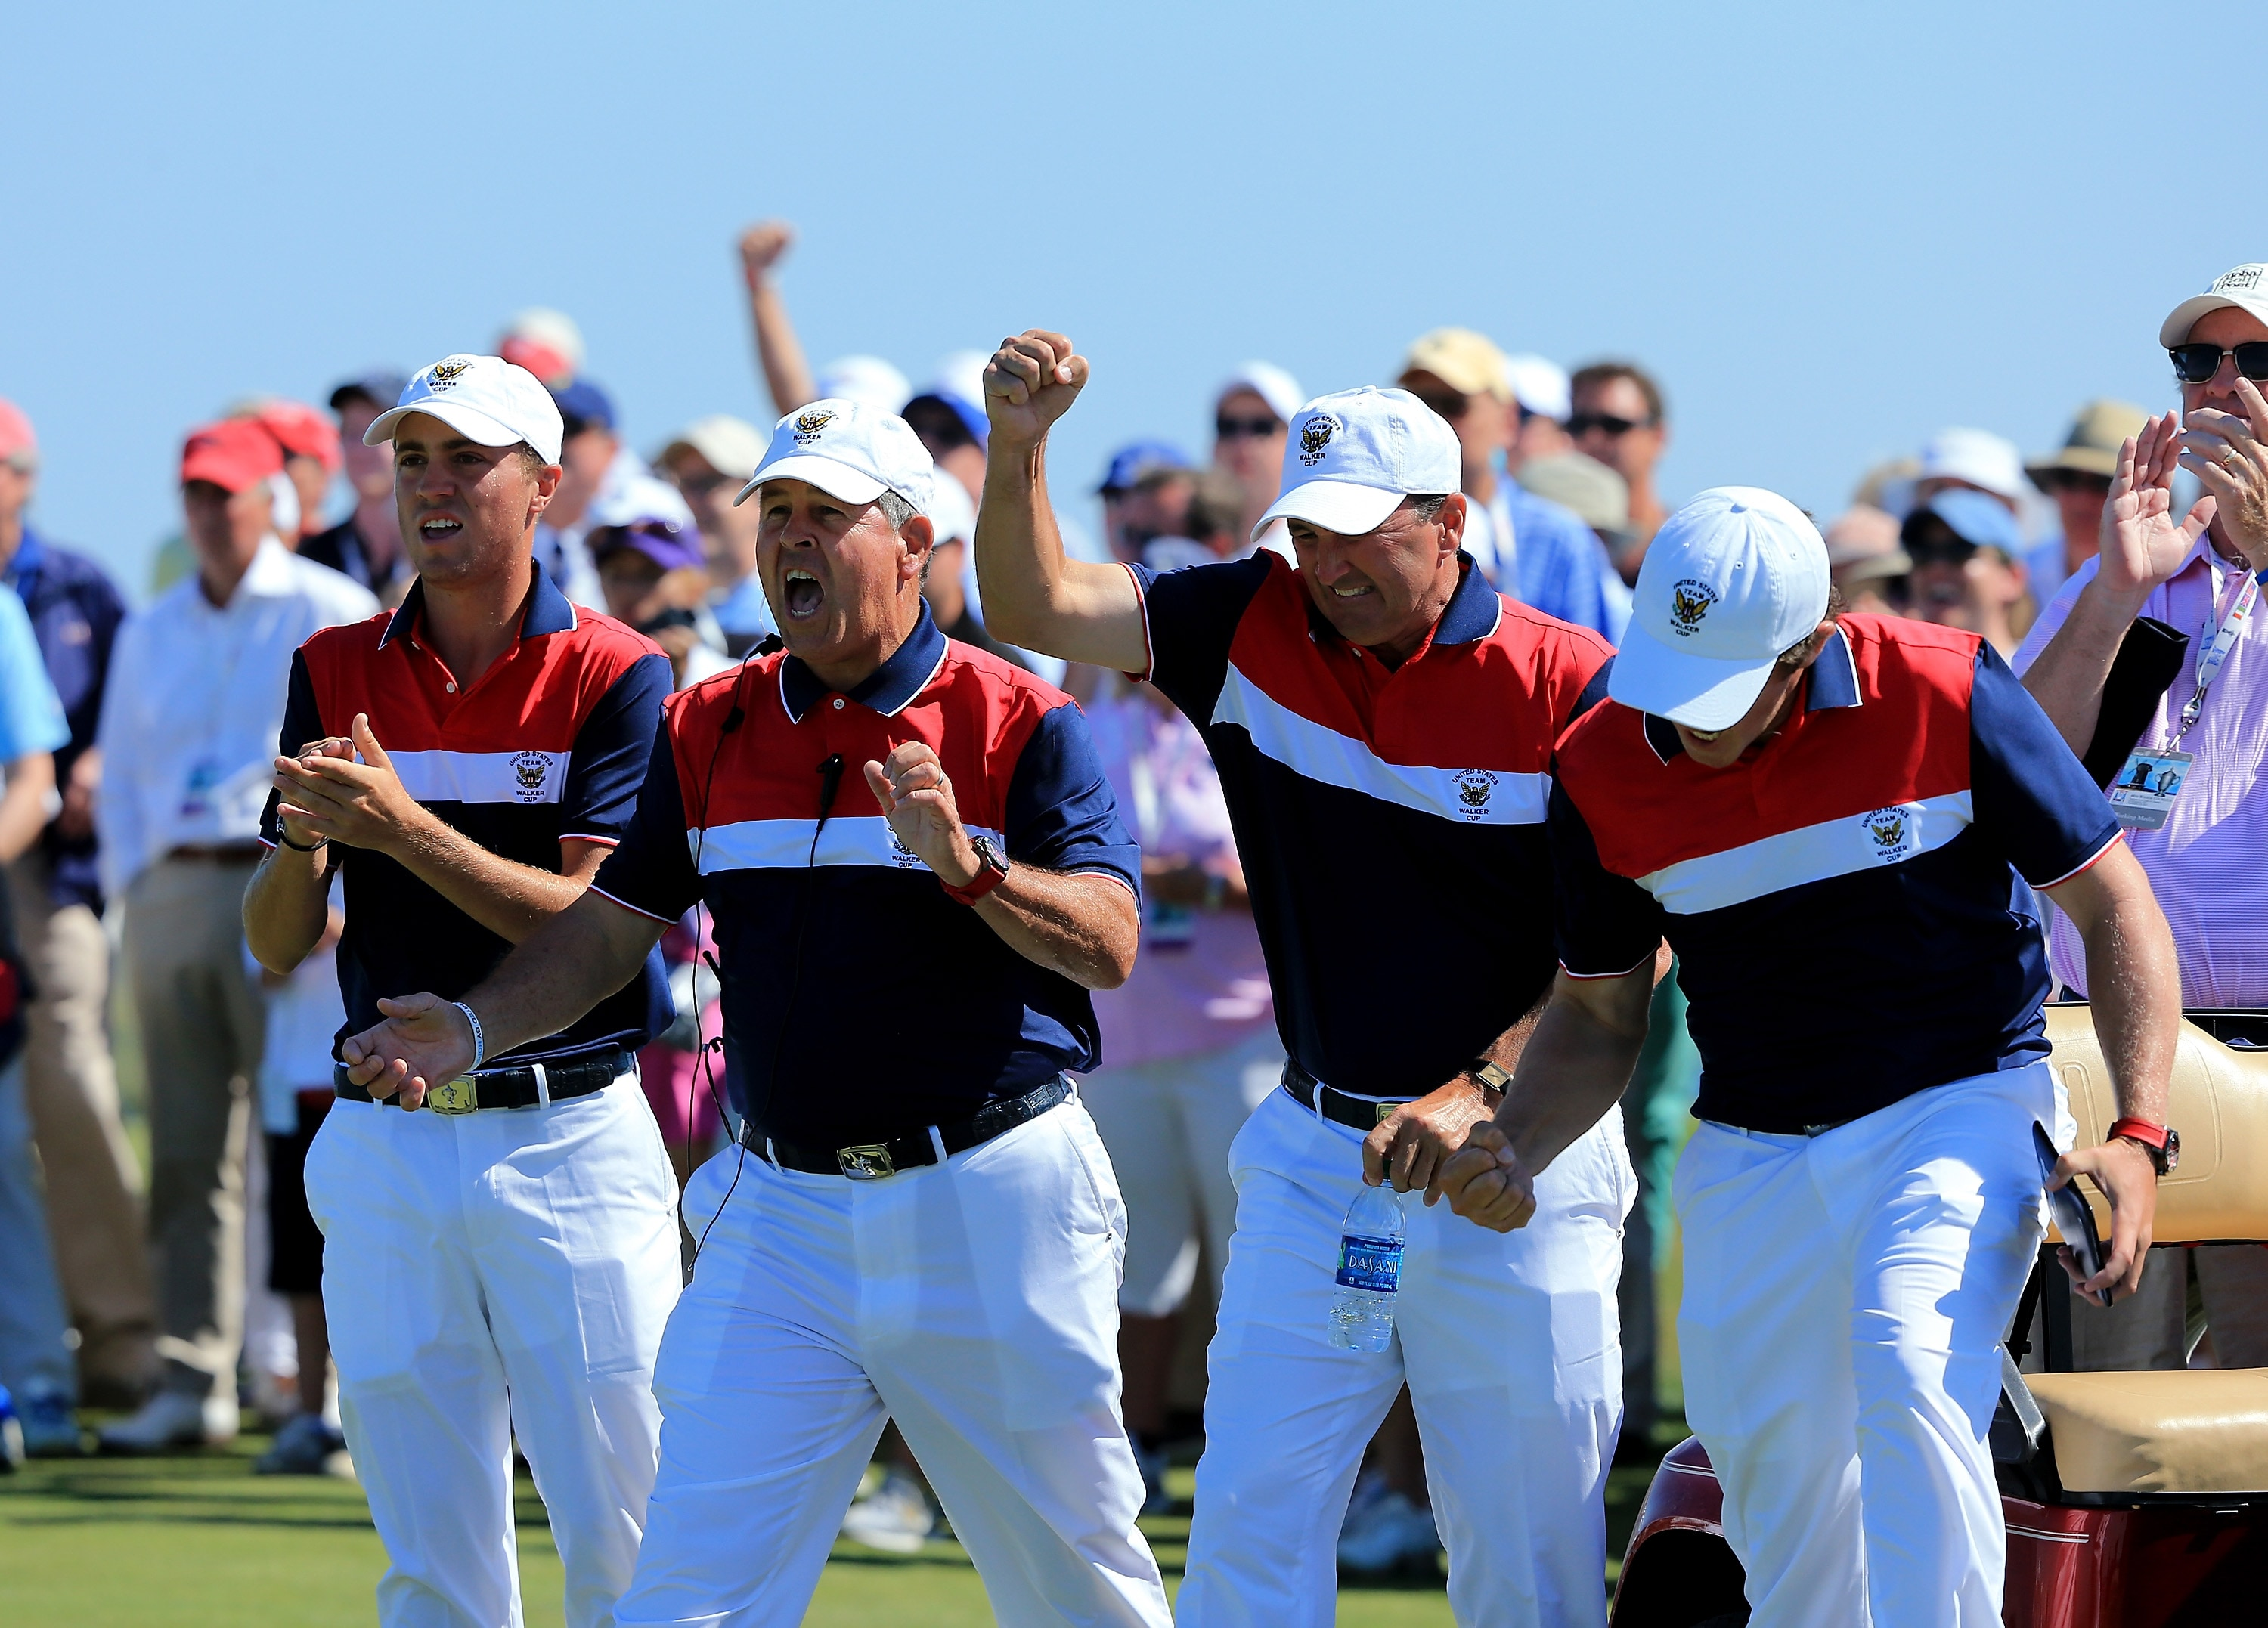 Justin Thomas and U.S. team, 2013 Walker Cup